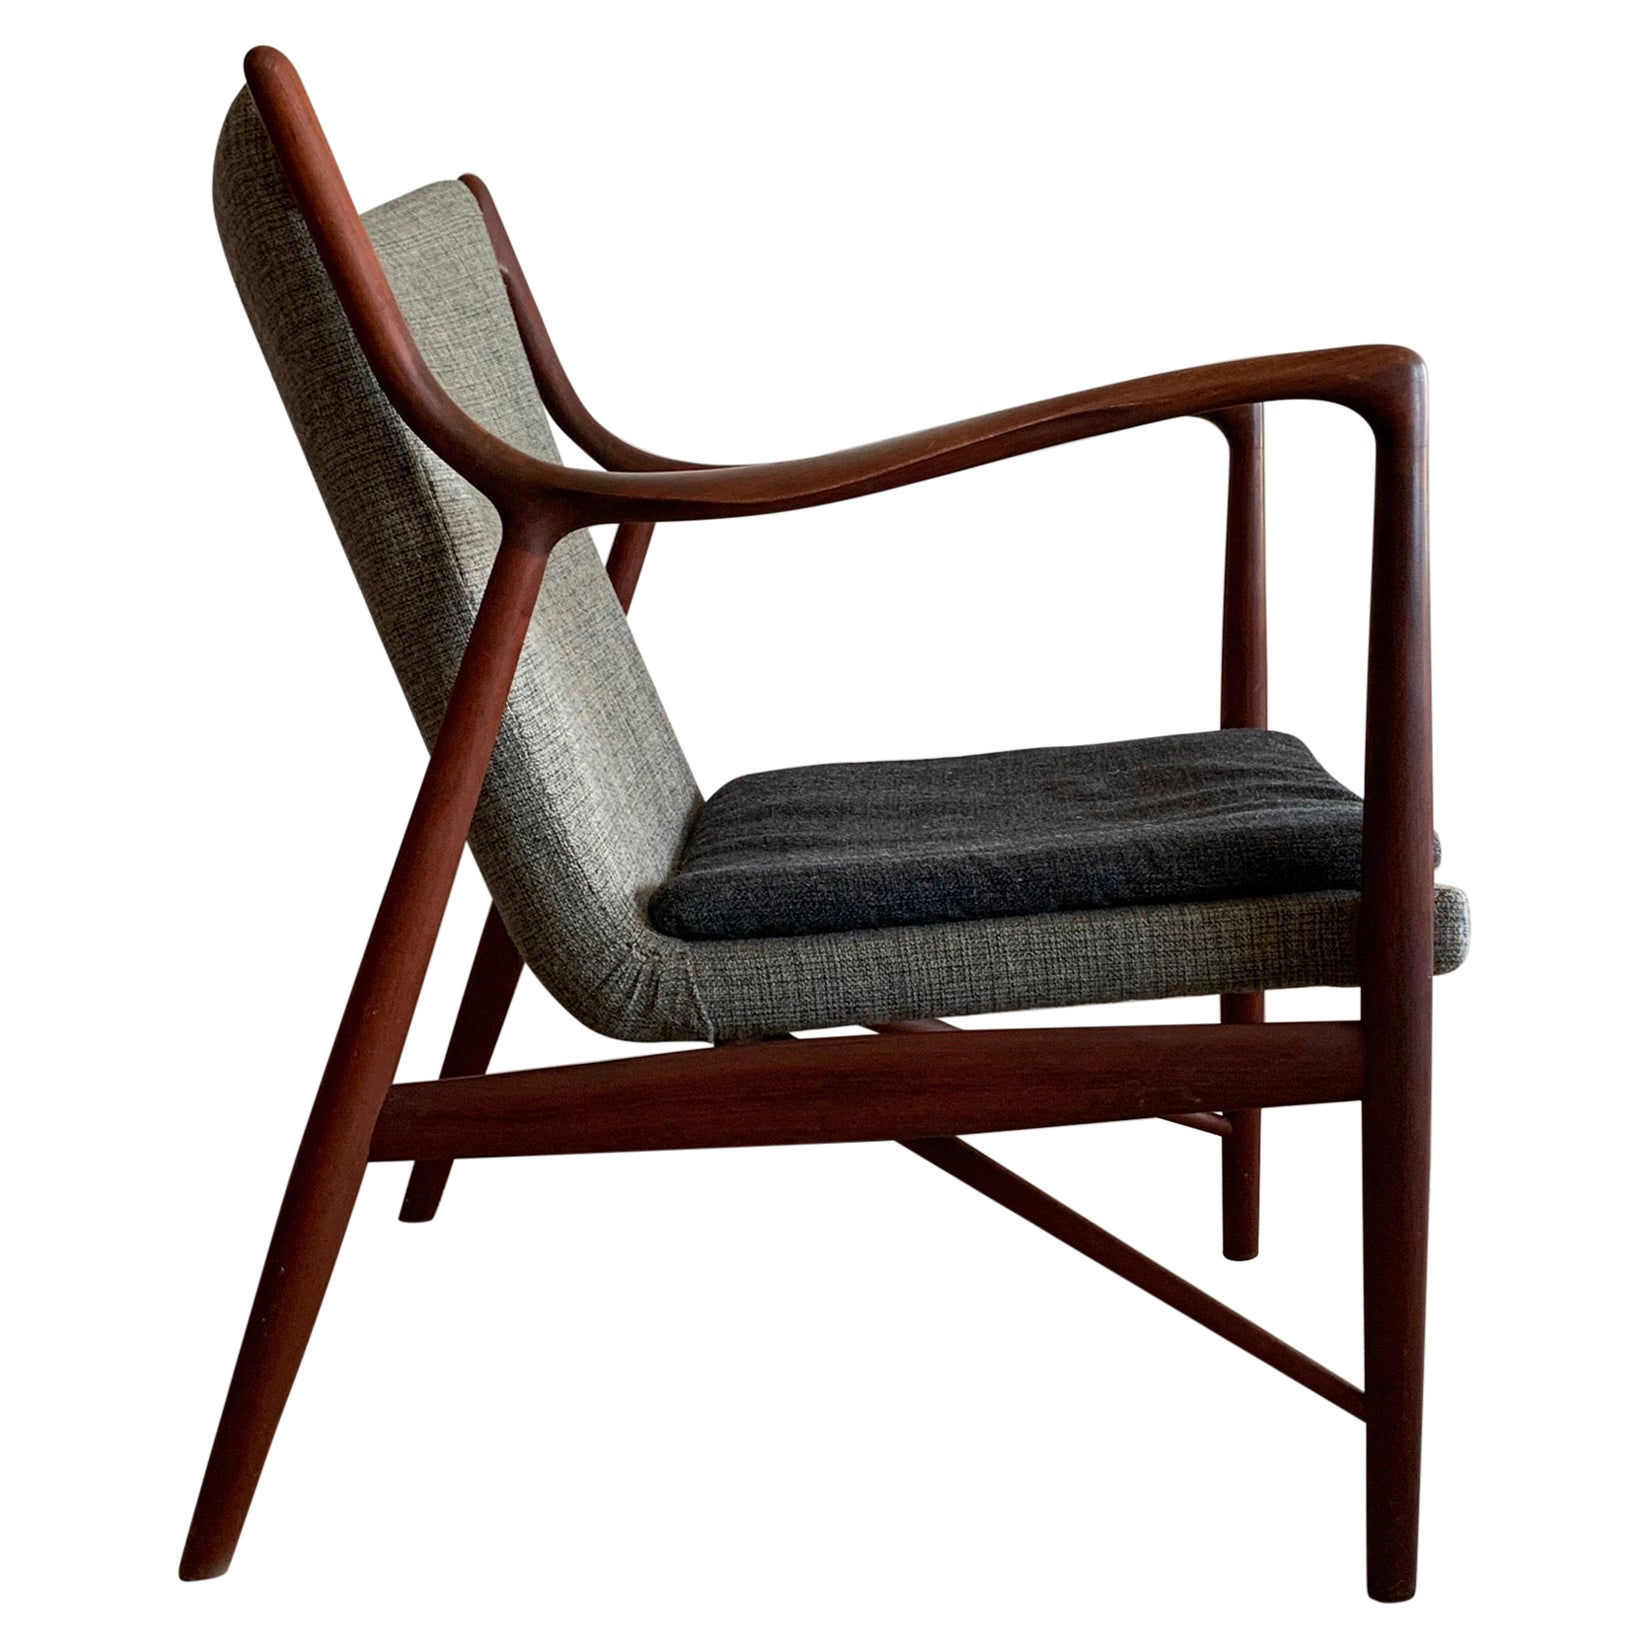 Original Finn Juhl NV45 Chair by Niels Vodder Denmark